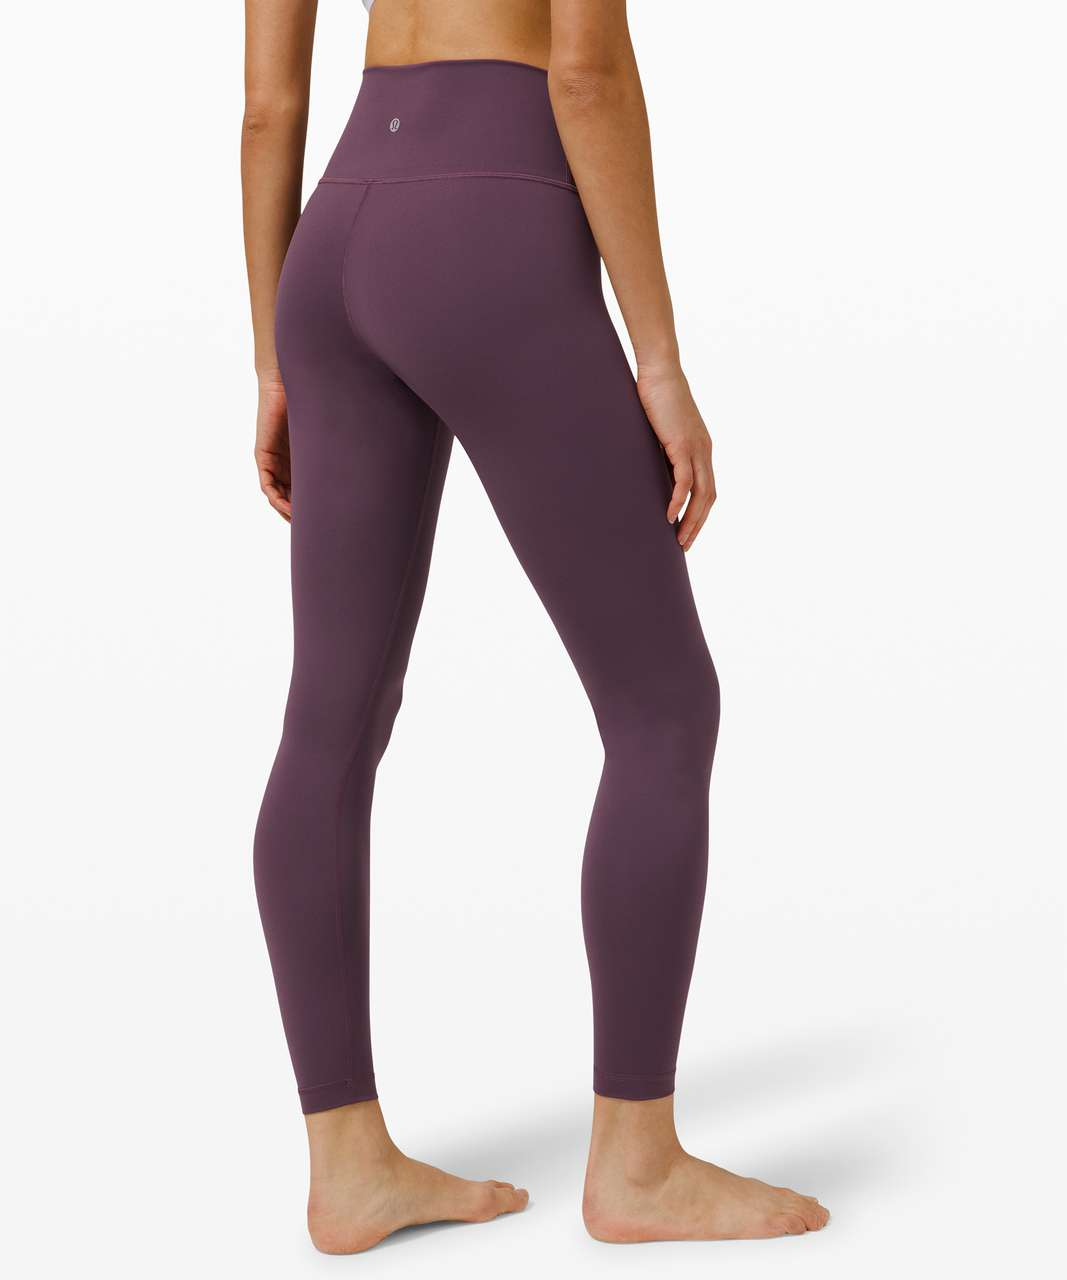 "Lululemon Wunder Under High-Rise Tight 28"" *Luxtreme - Grape Thistle"